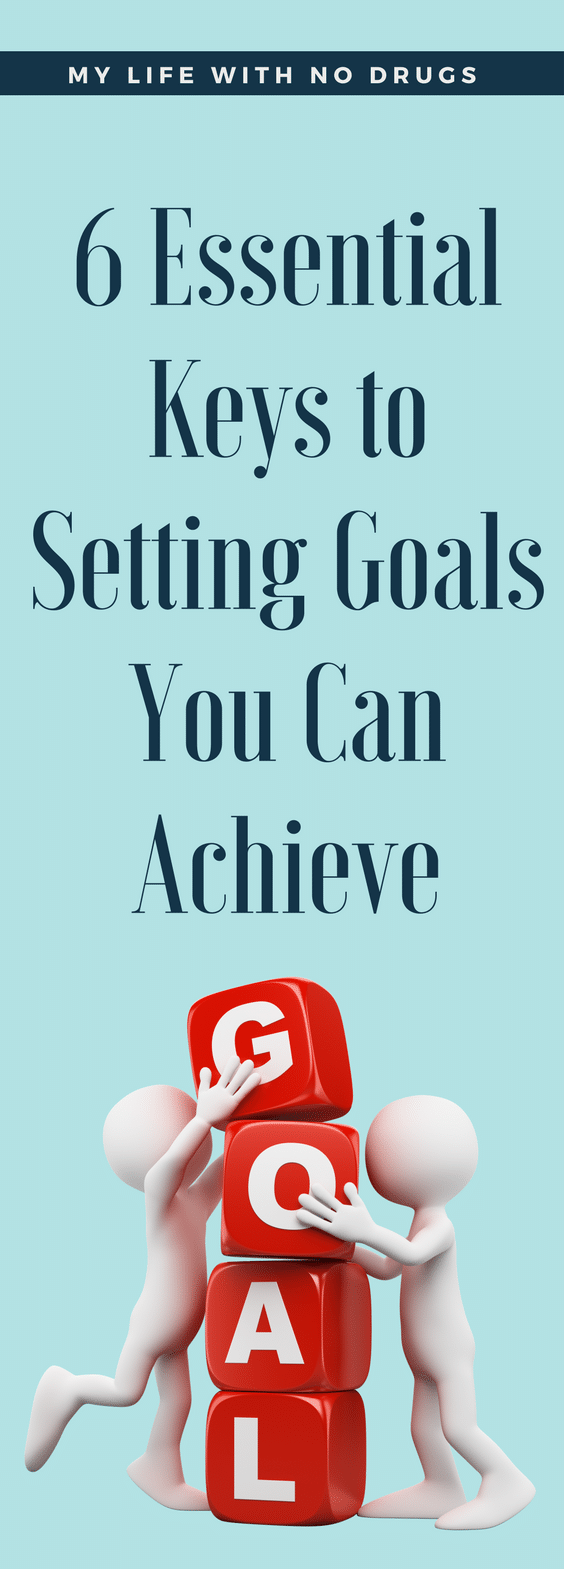 If you want to start #settinggoals #goalsetting that you will be able to achieve, it is essential to follow these fundamental keys.#goals #setting #setgoals #keys #time #success #dreams #love #newgoals #achievegoals #life #setgoals #lifegoals #work #setting #friends #future